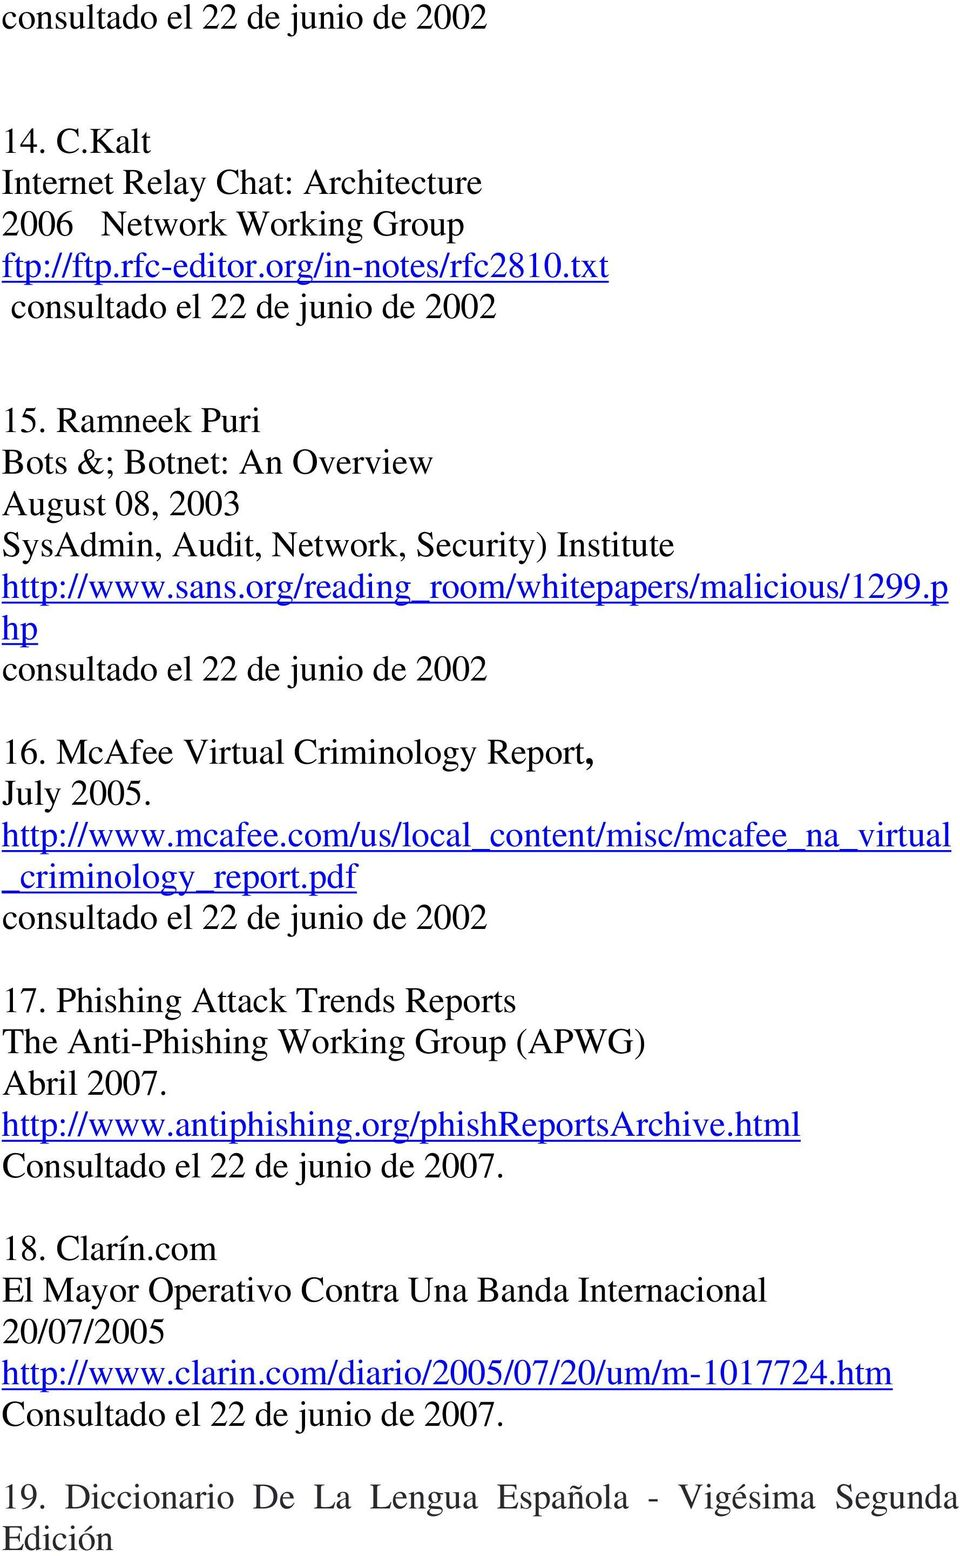 McAfee Virtual Criminology Report, July 2005. http://www.mcafee.com/us/local_content/misc/mcafee_na_virtual _criminology_report.pdf 17.